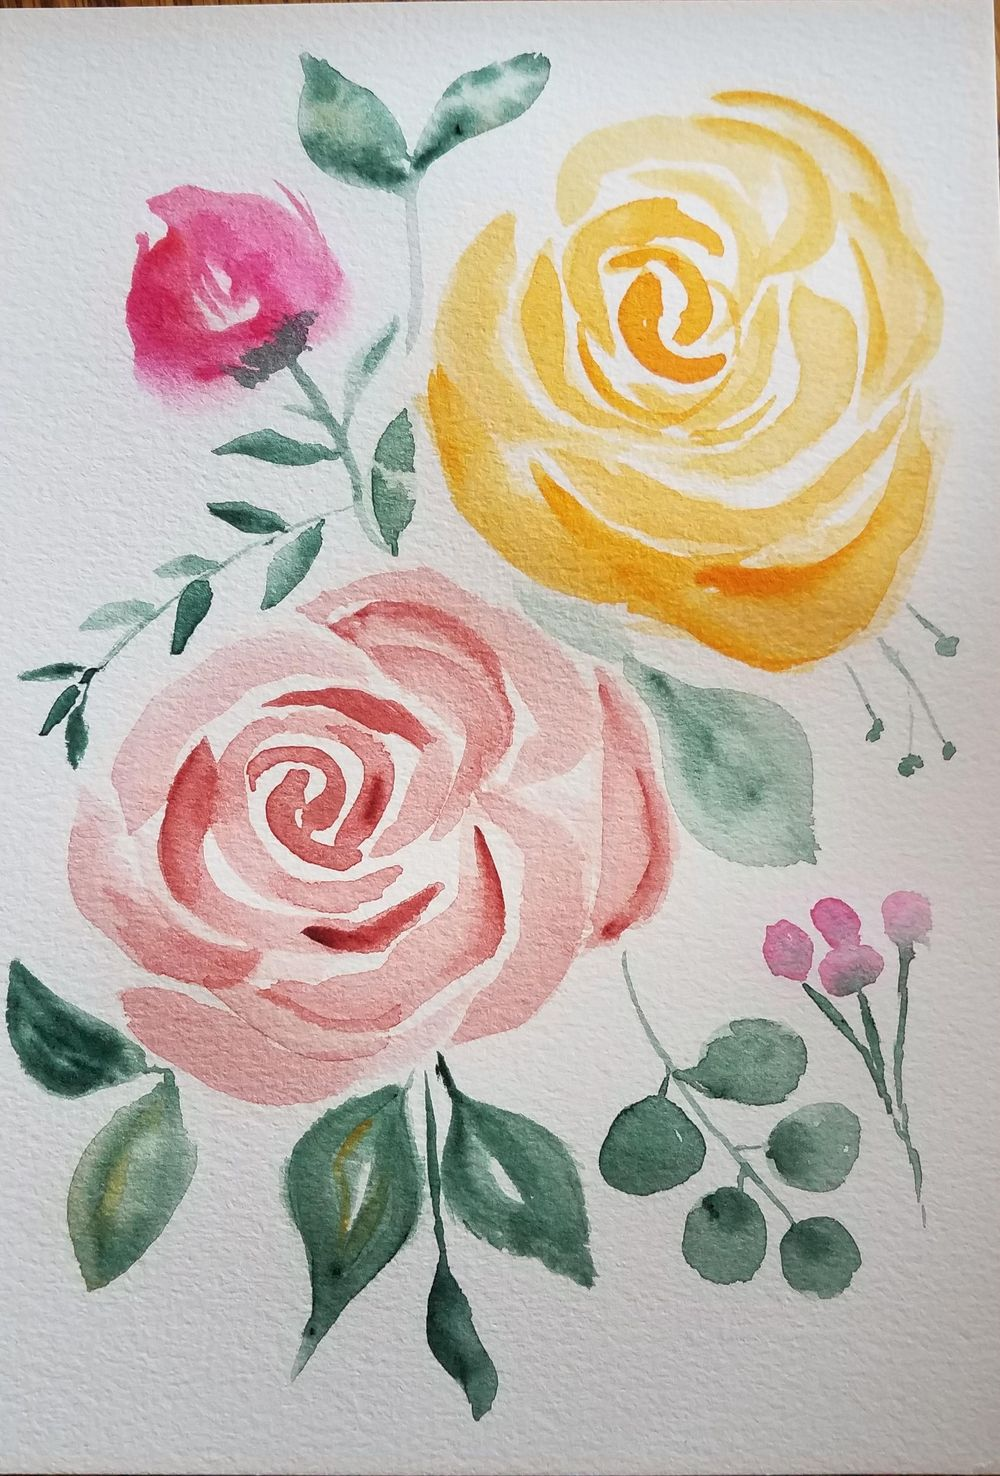 roses0410 - image 1 - student project